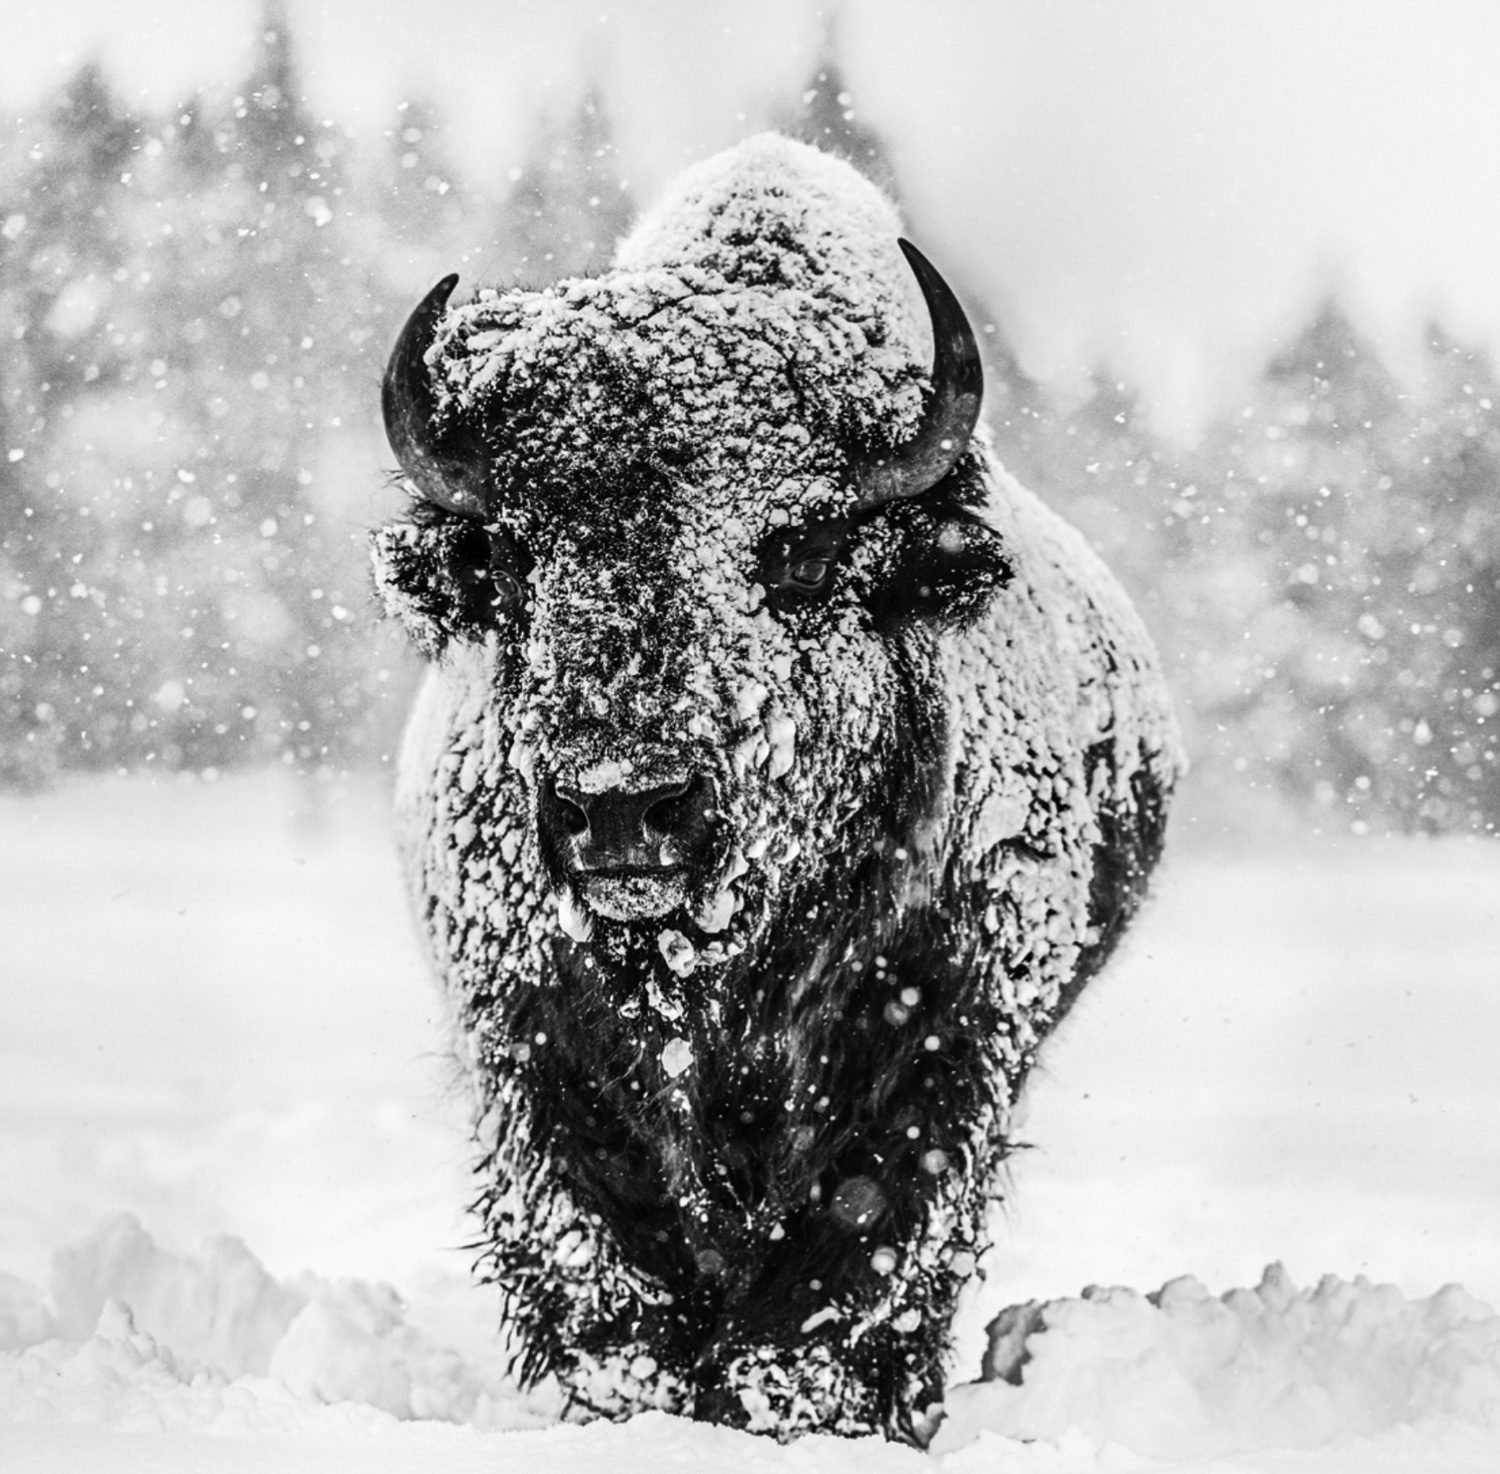 Winter's Coming, Yellowstone National Park, Wyoming, USA